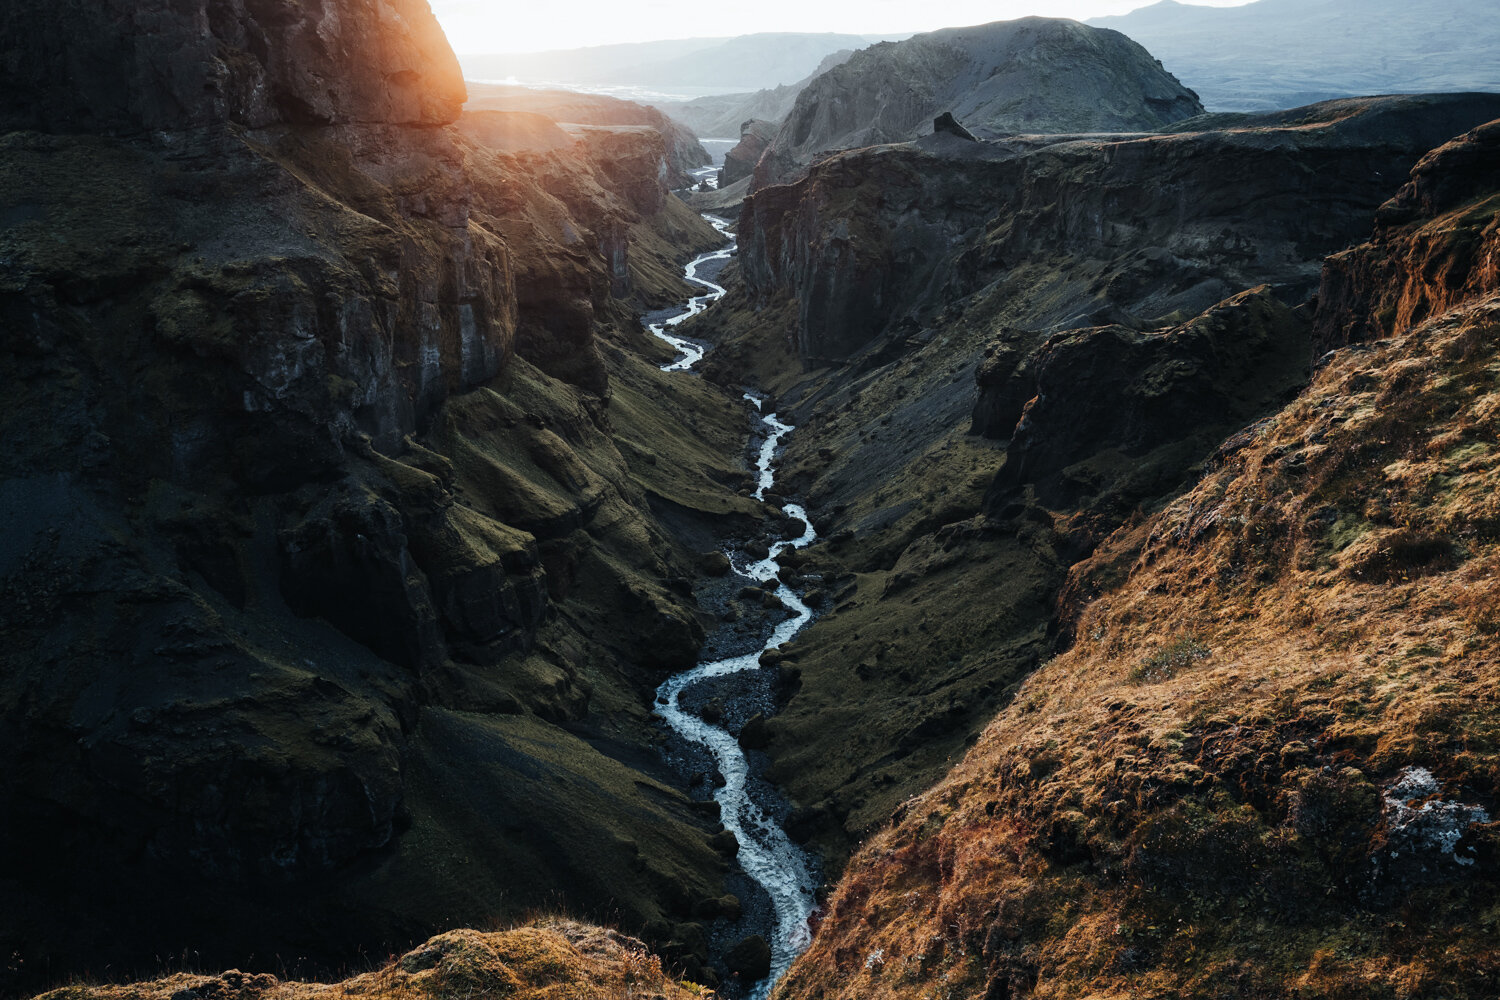 Hannes Becker landscape photo. Valley, river, mountains. Thorsmörk, Iceland.